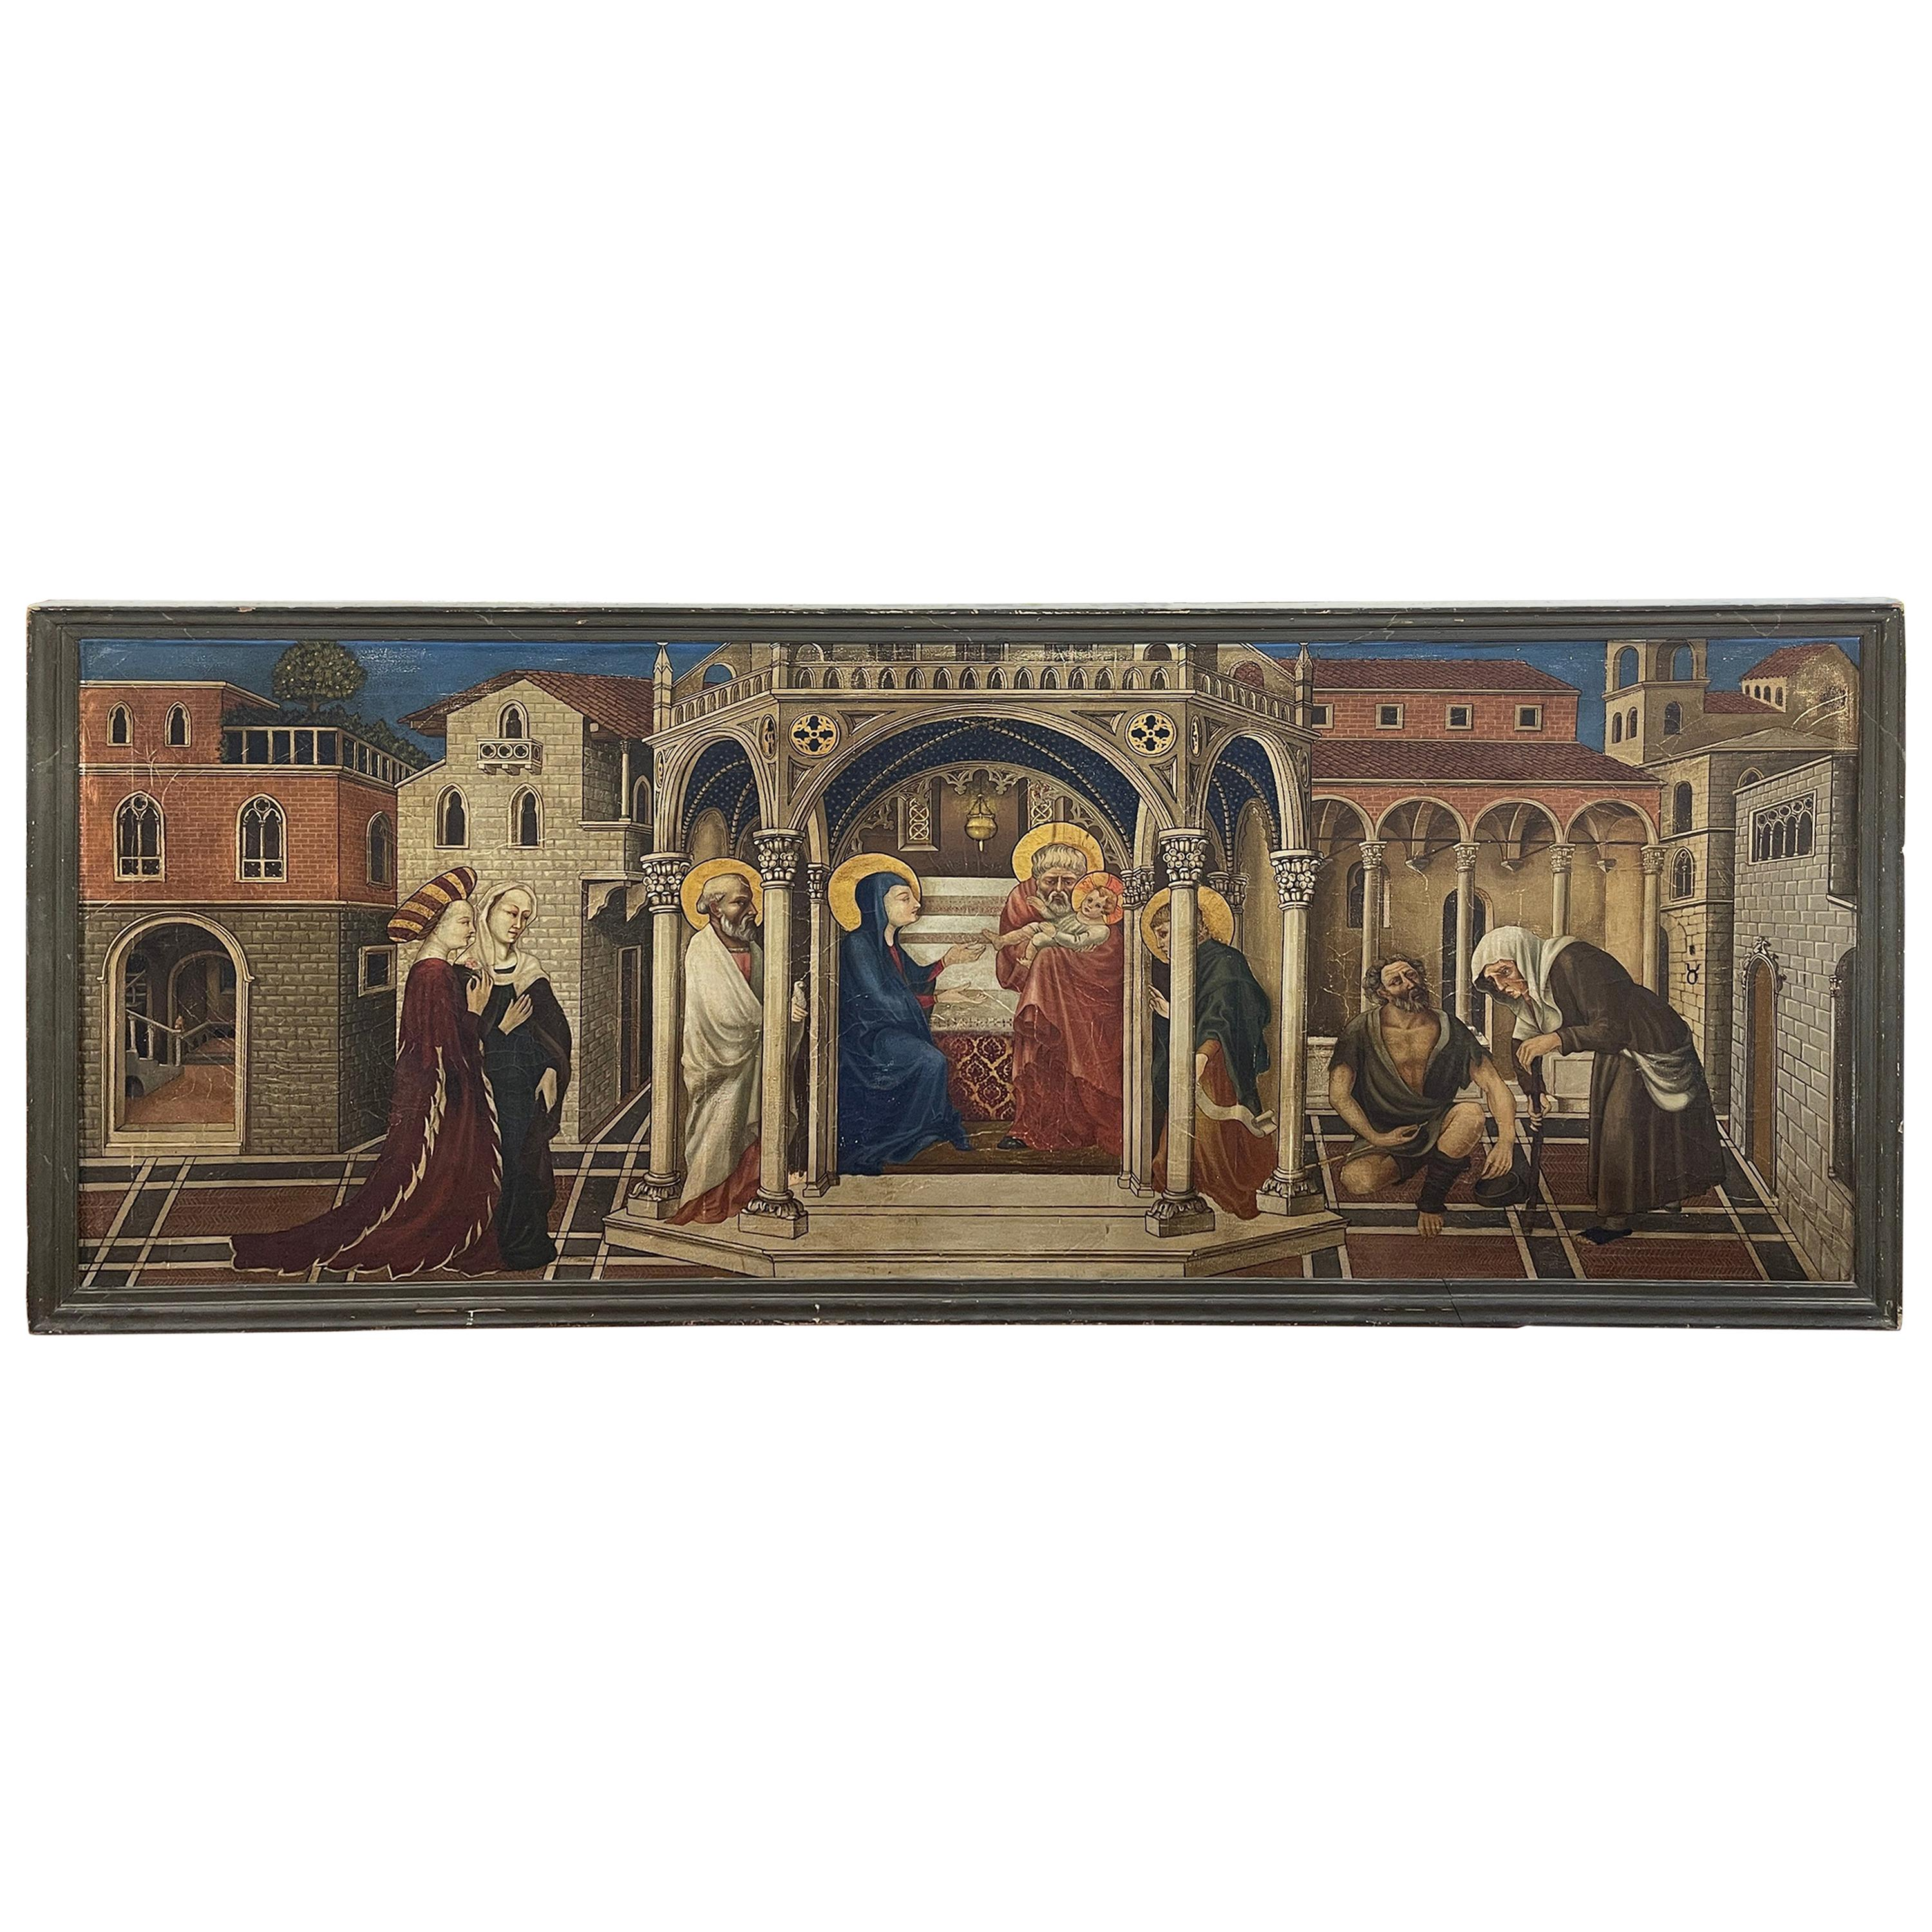 20th Century Gothic Painting Oil on Canvas Gentile da Fabriano, 1900s